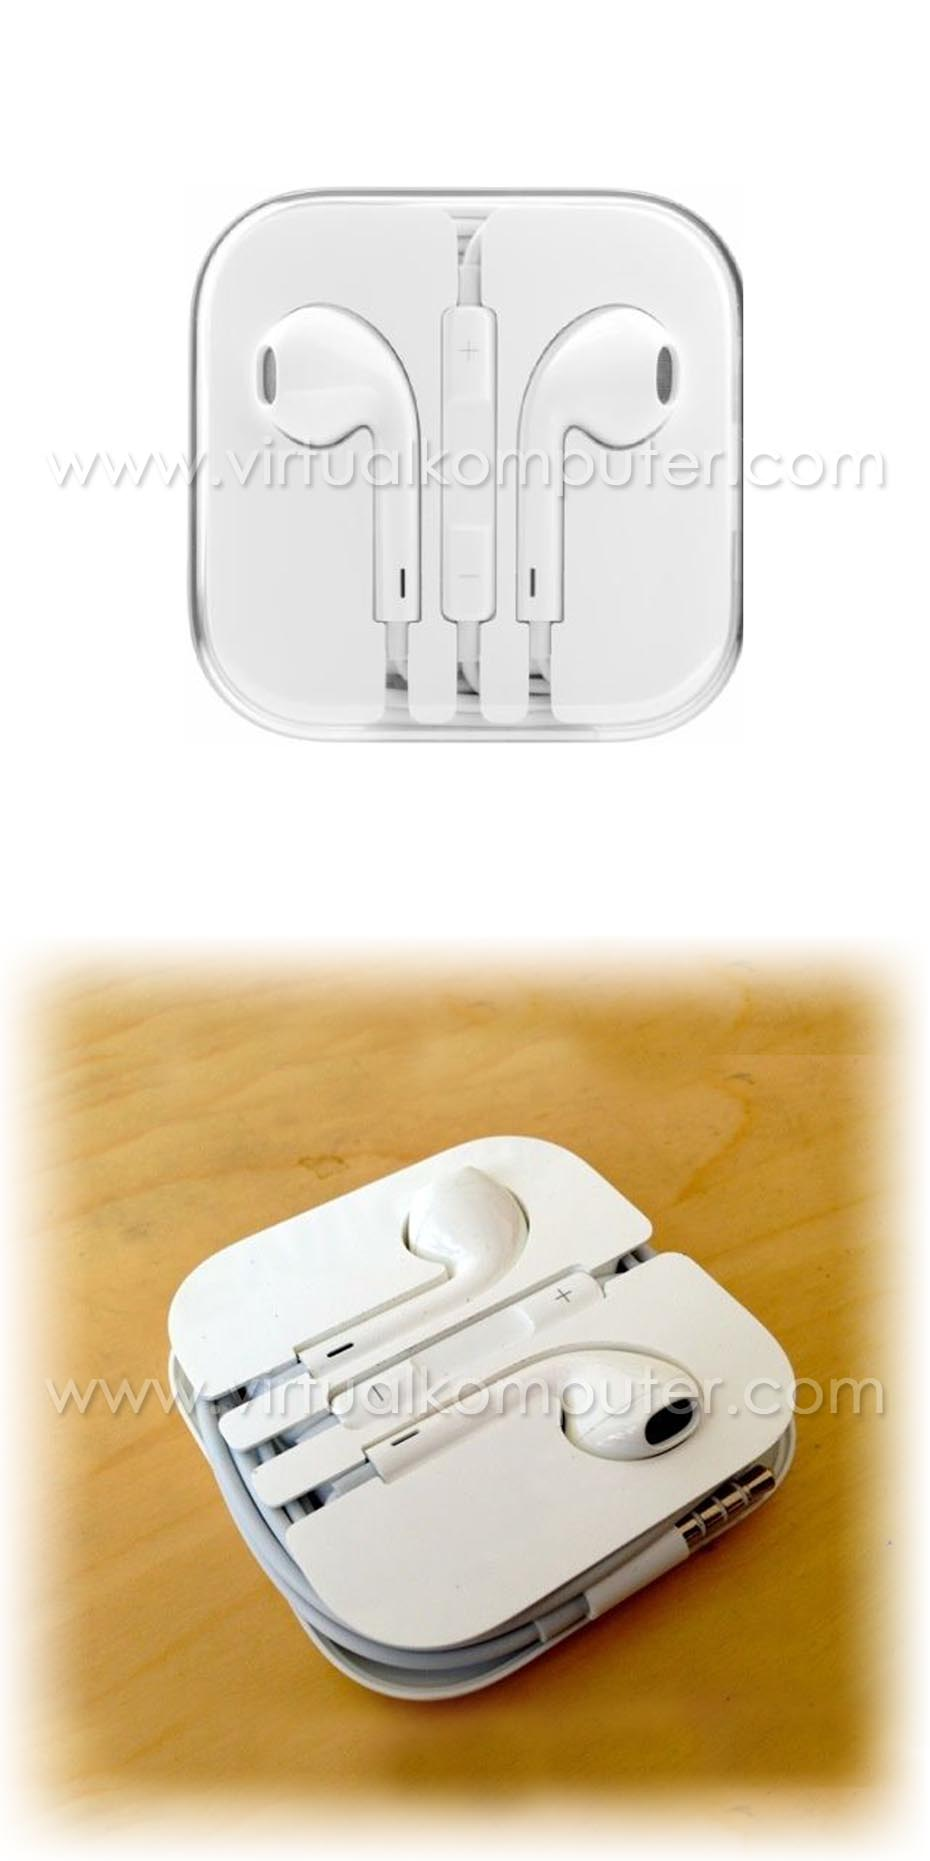 Apple Earpods with Remote and Mic Overview